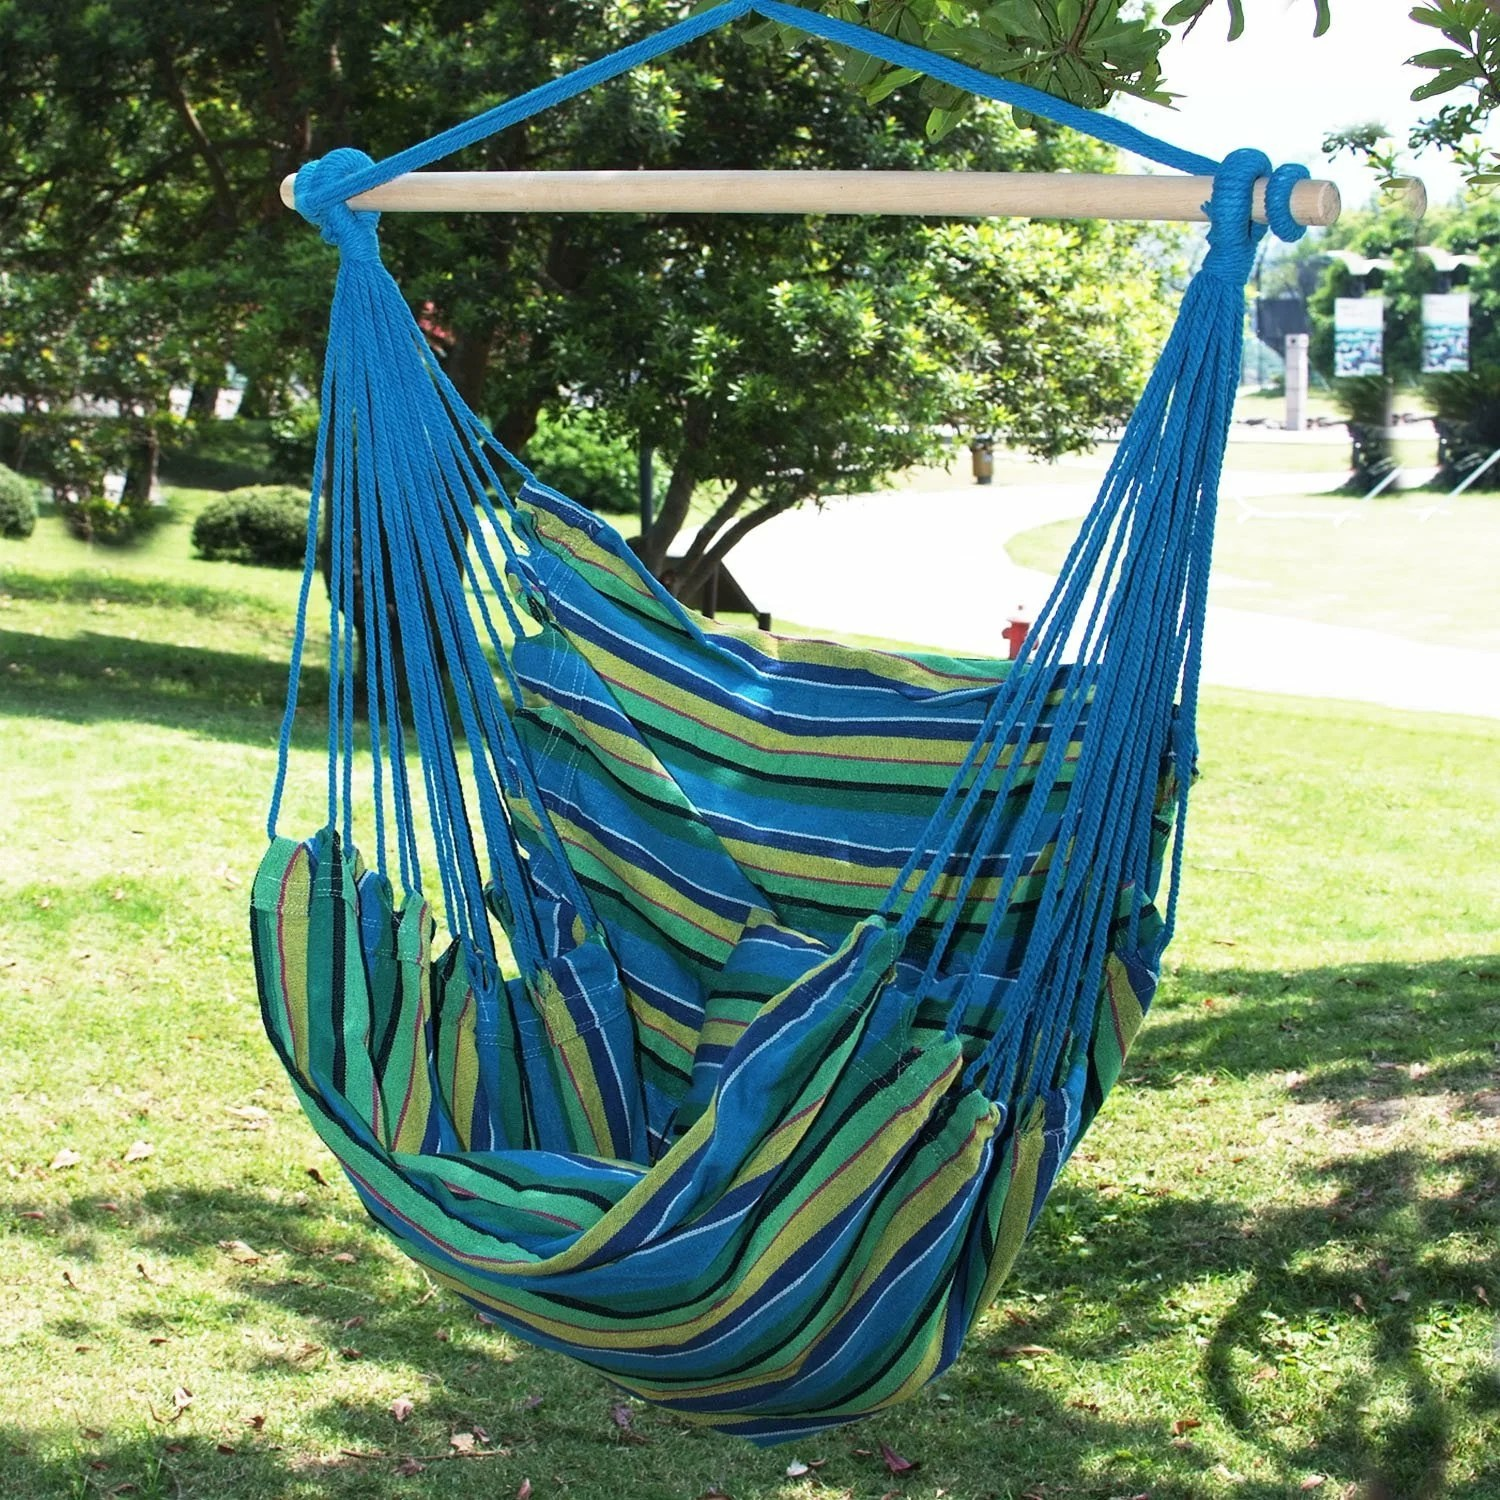 tree hanging hammock chair jehs laub lounge adecotrading naval cotton fabric canvas